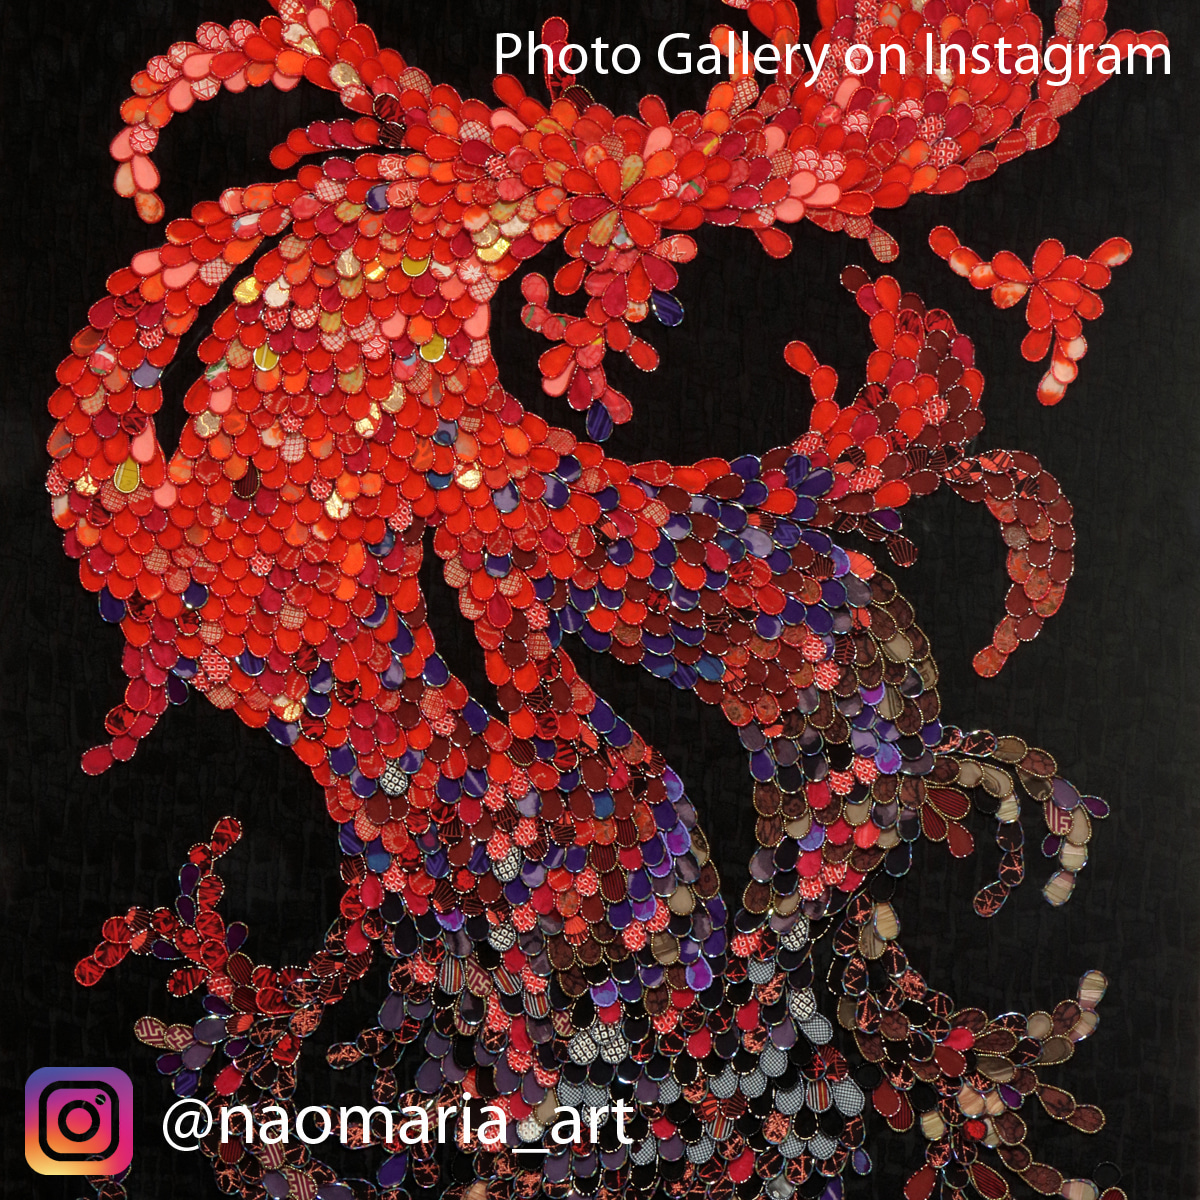 Instagram @naomaria_art